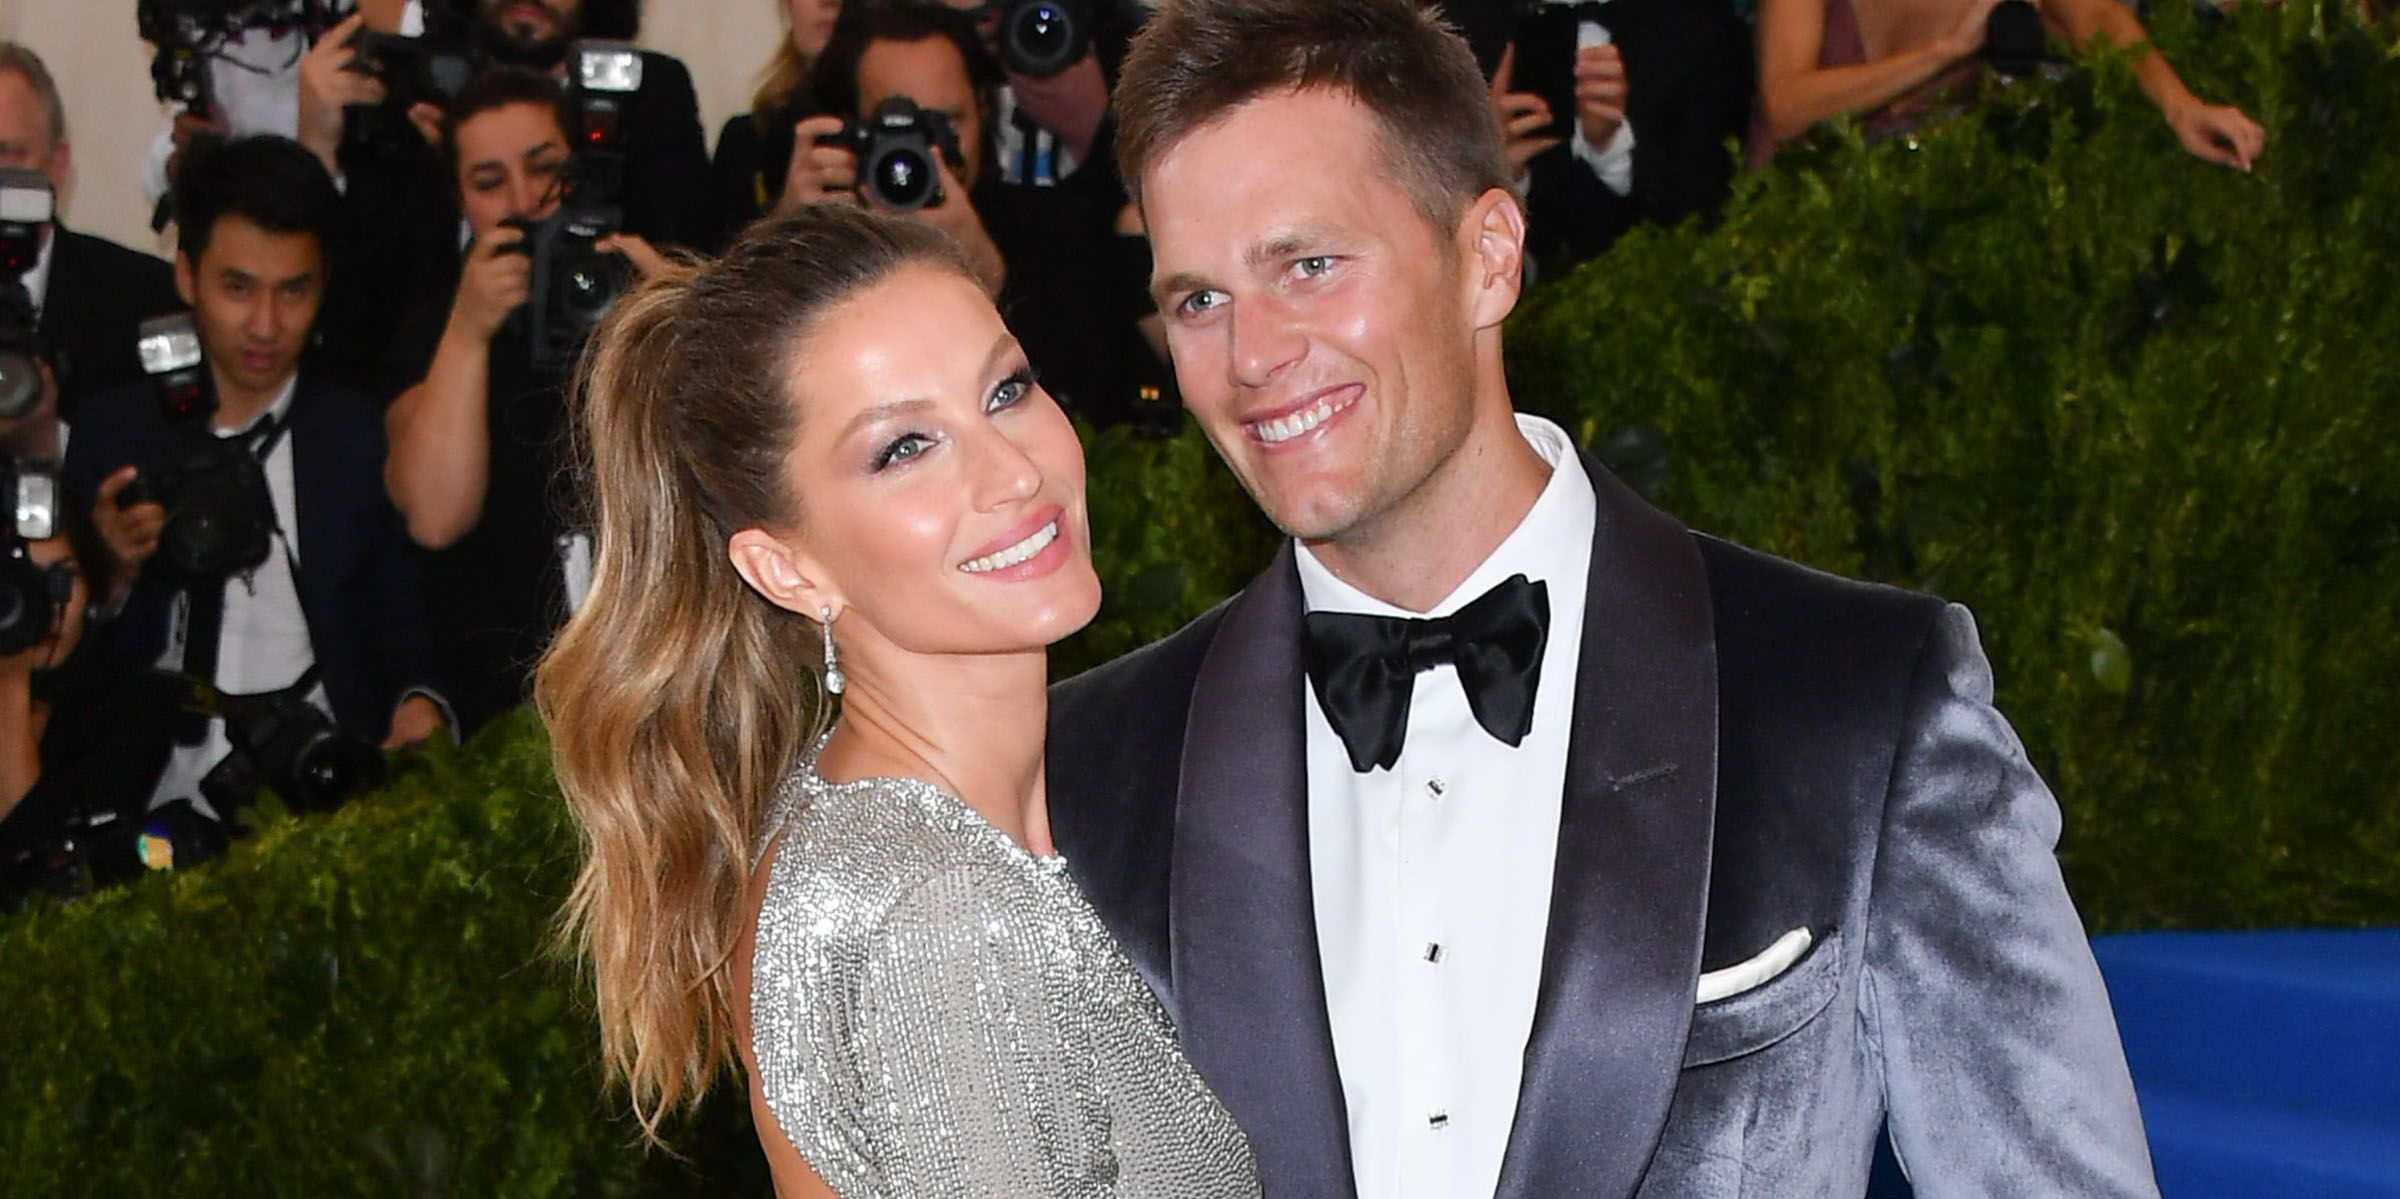 Gisele Bundchen And Tom Brady Share Never Before Seen Wedding Photos For Their Anniversary